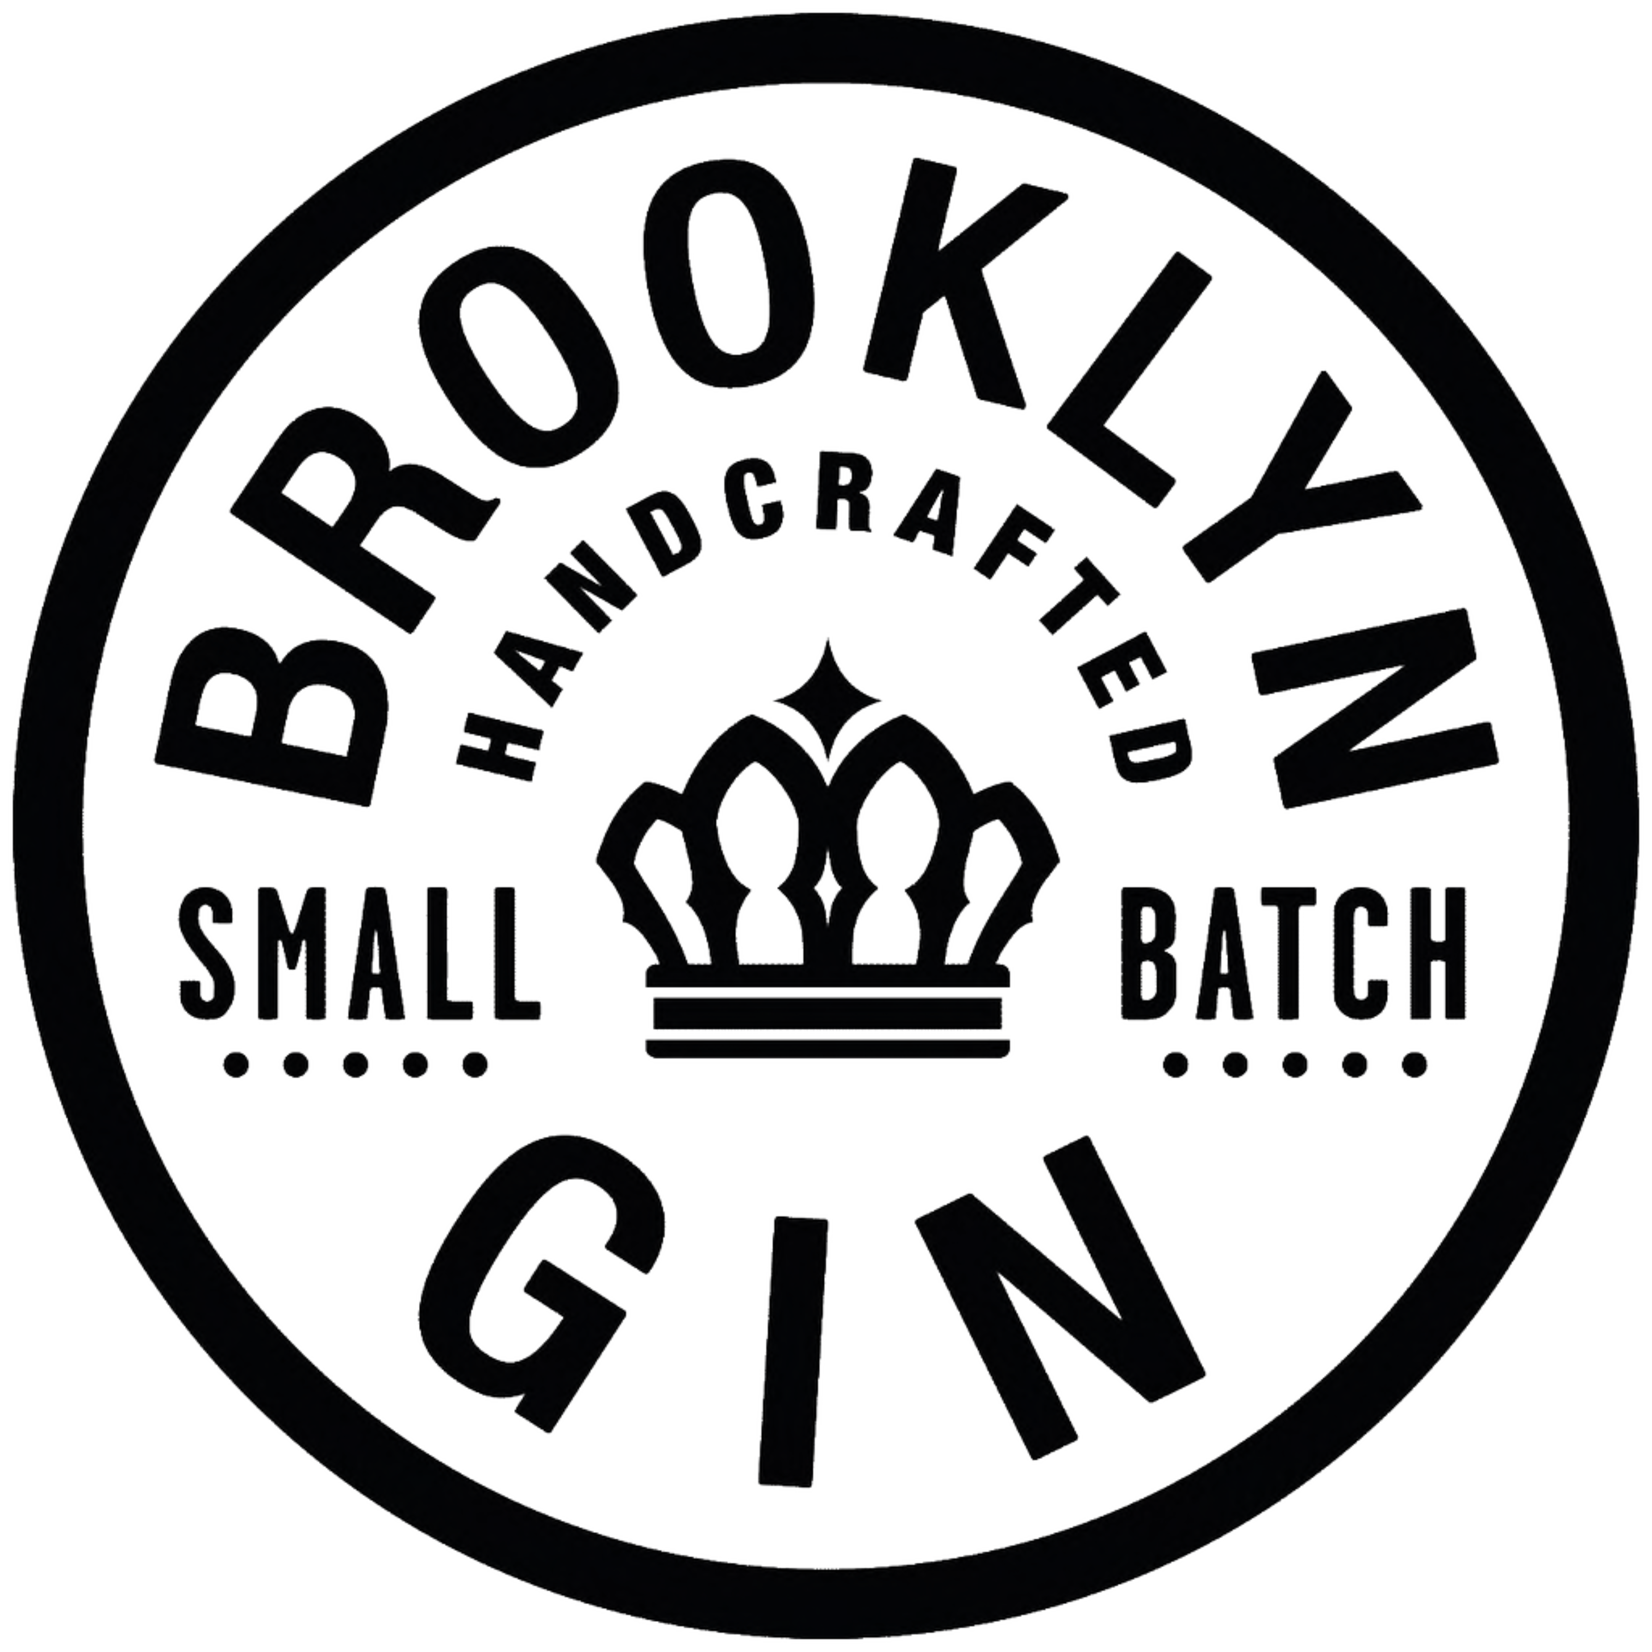 Brooklyn Gin Small Batch